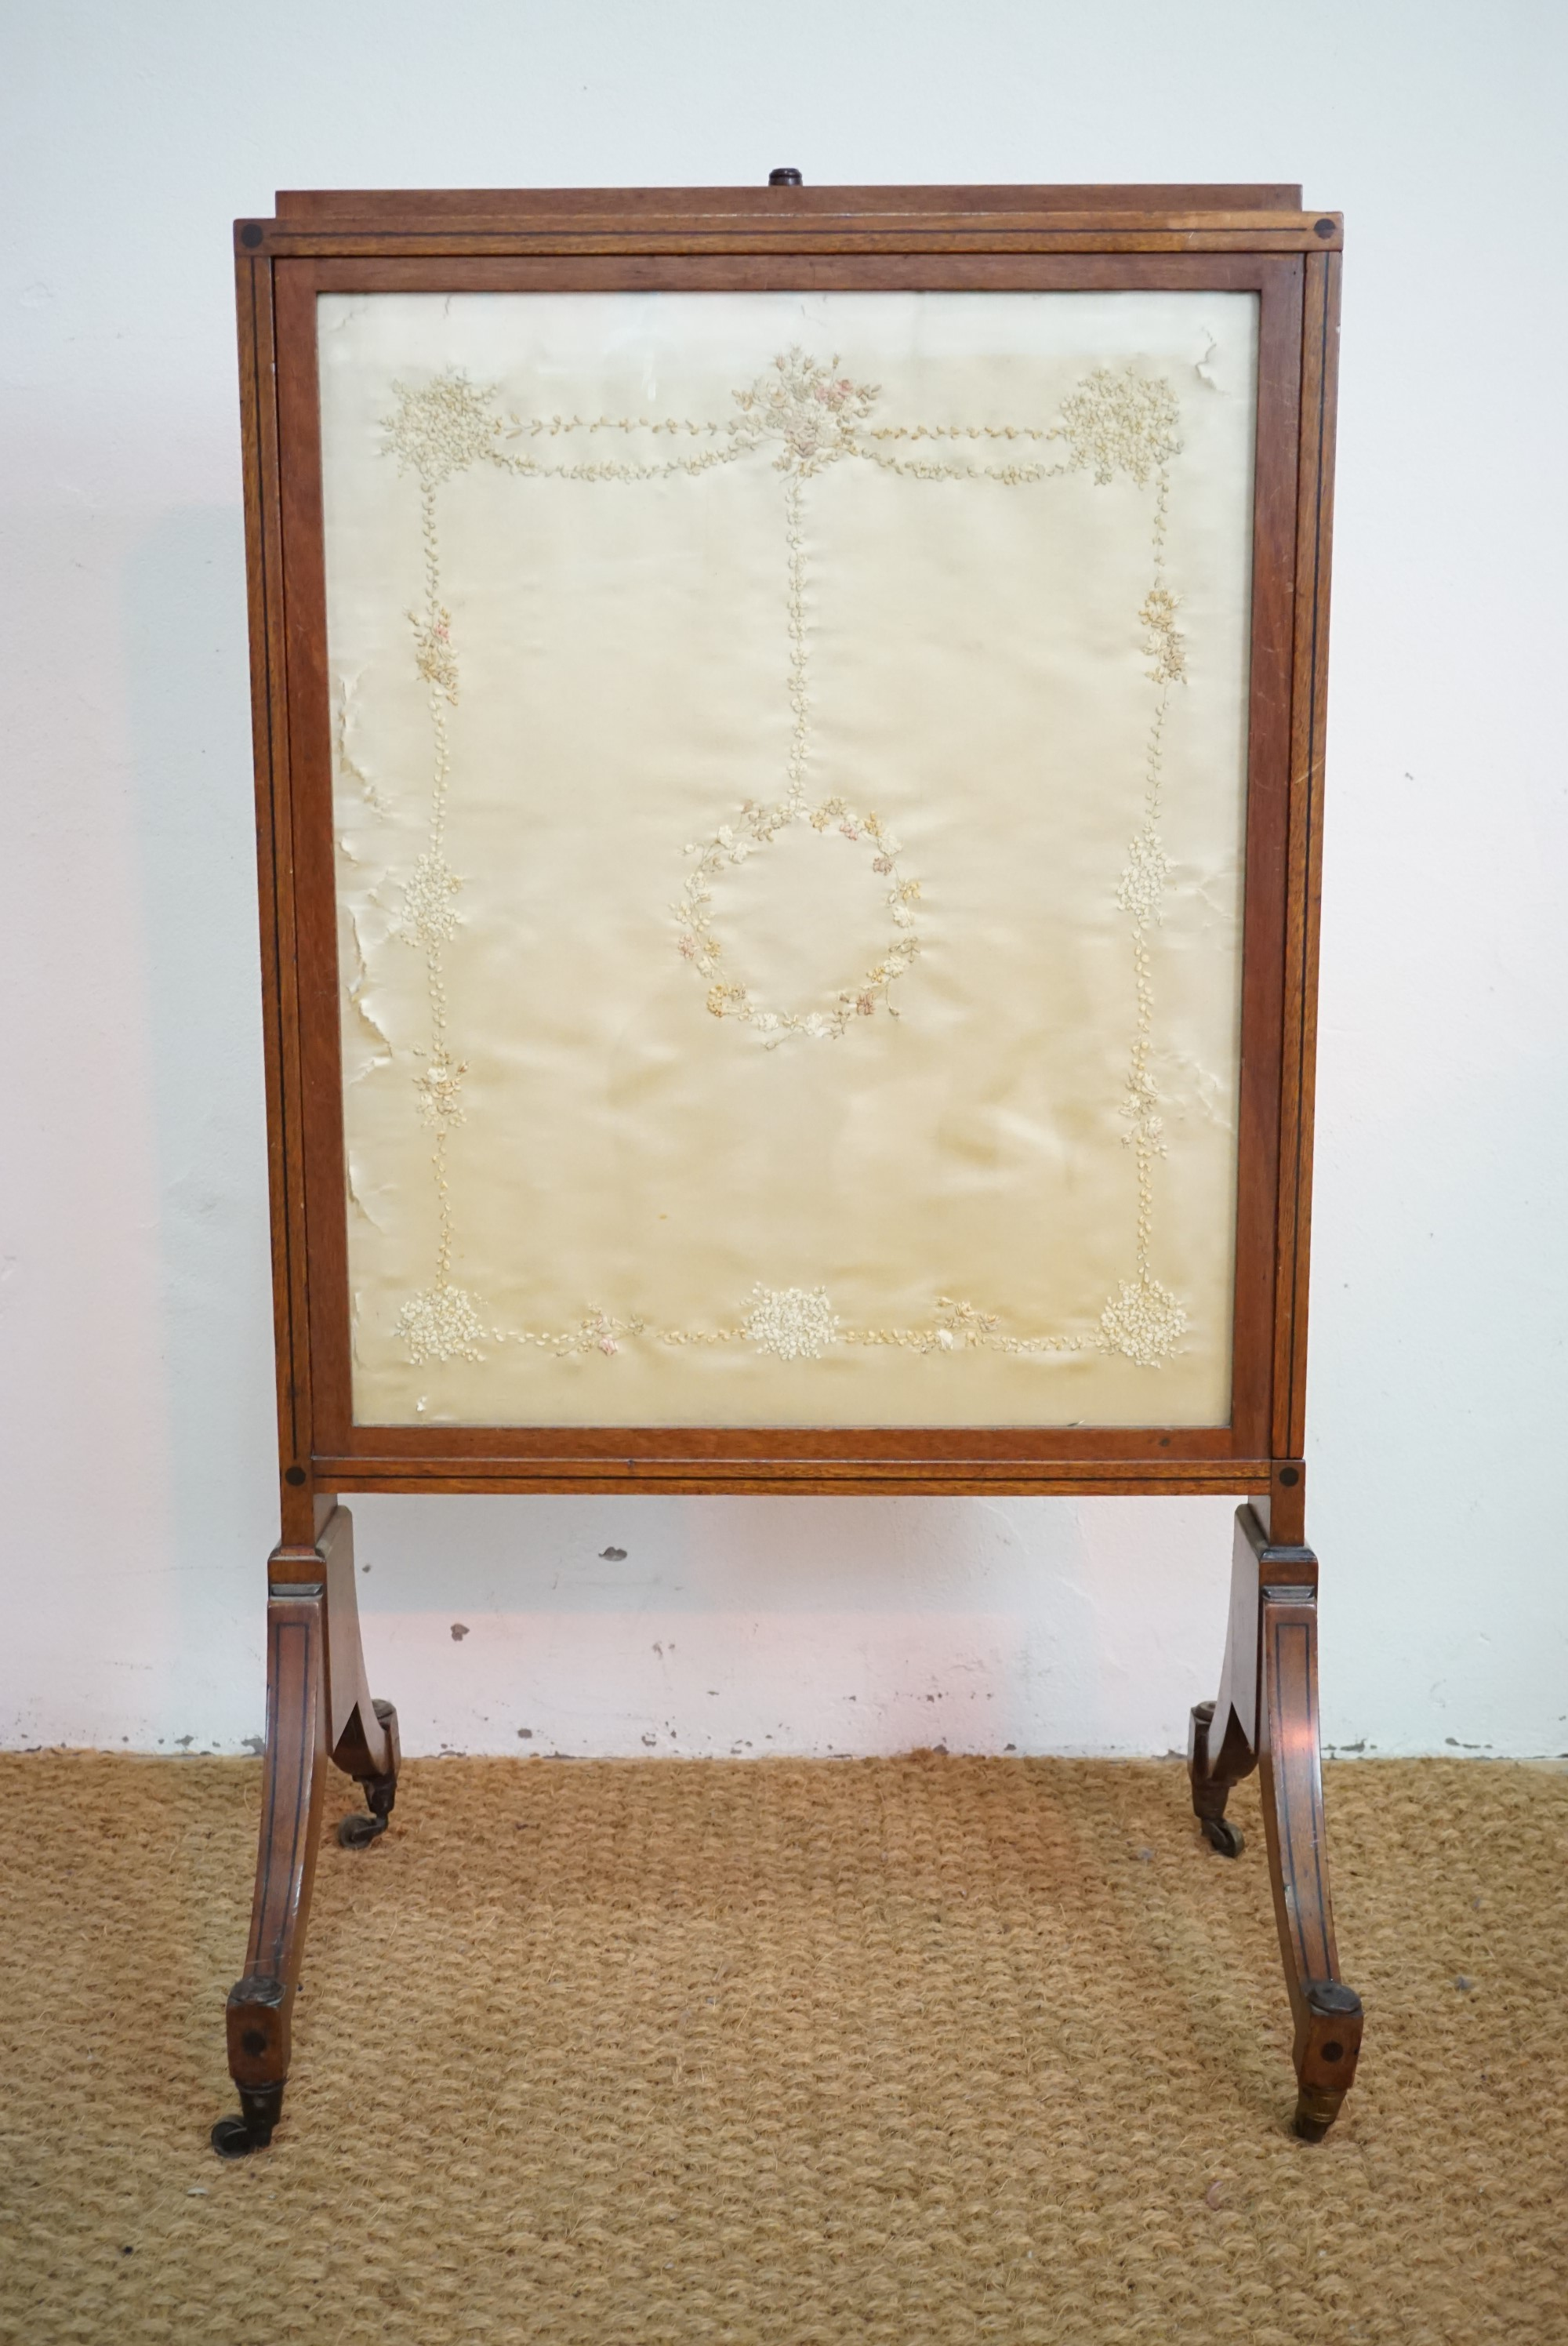 Lot 781 - An early 19th Century height-adjustable mahogany fire screen with extending sides